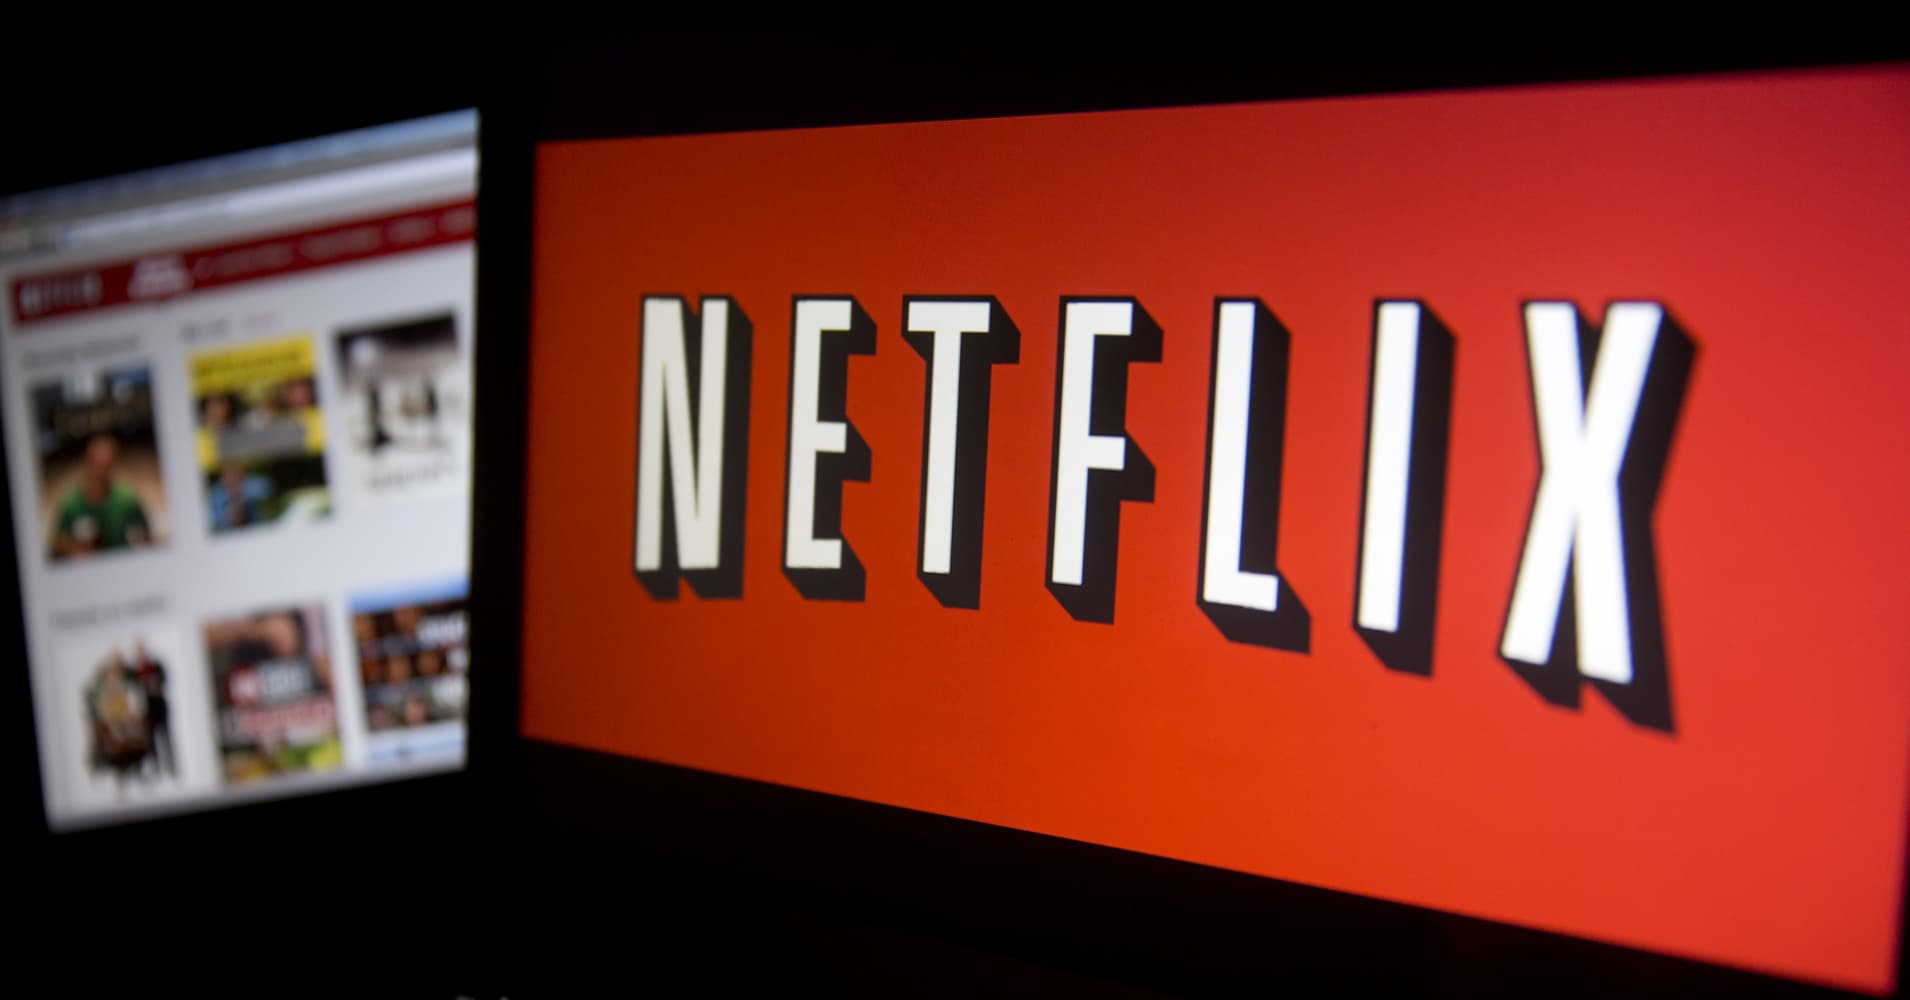 Inside Netflix's 'Powerful' corporate culture of freedom and